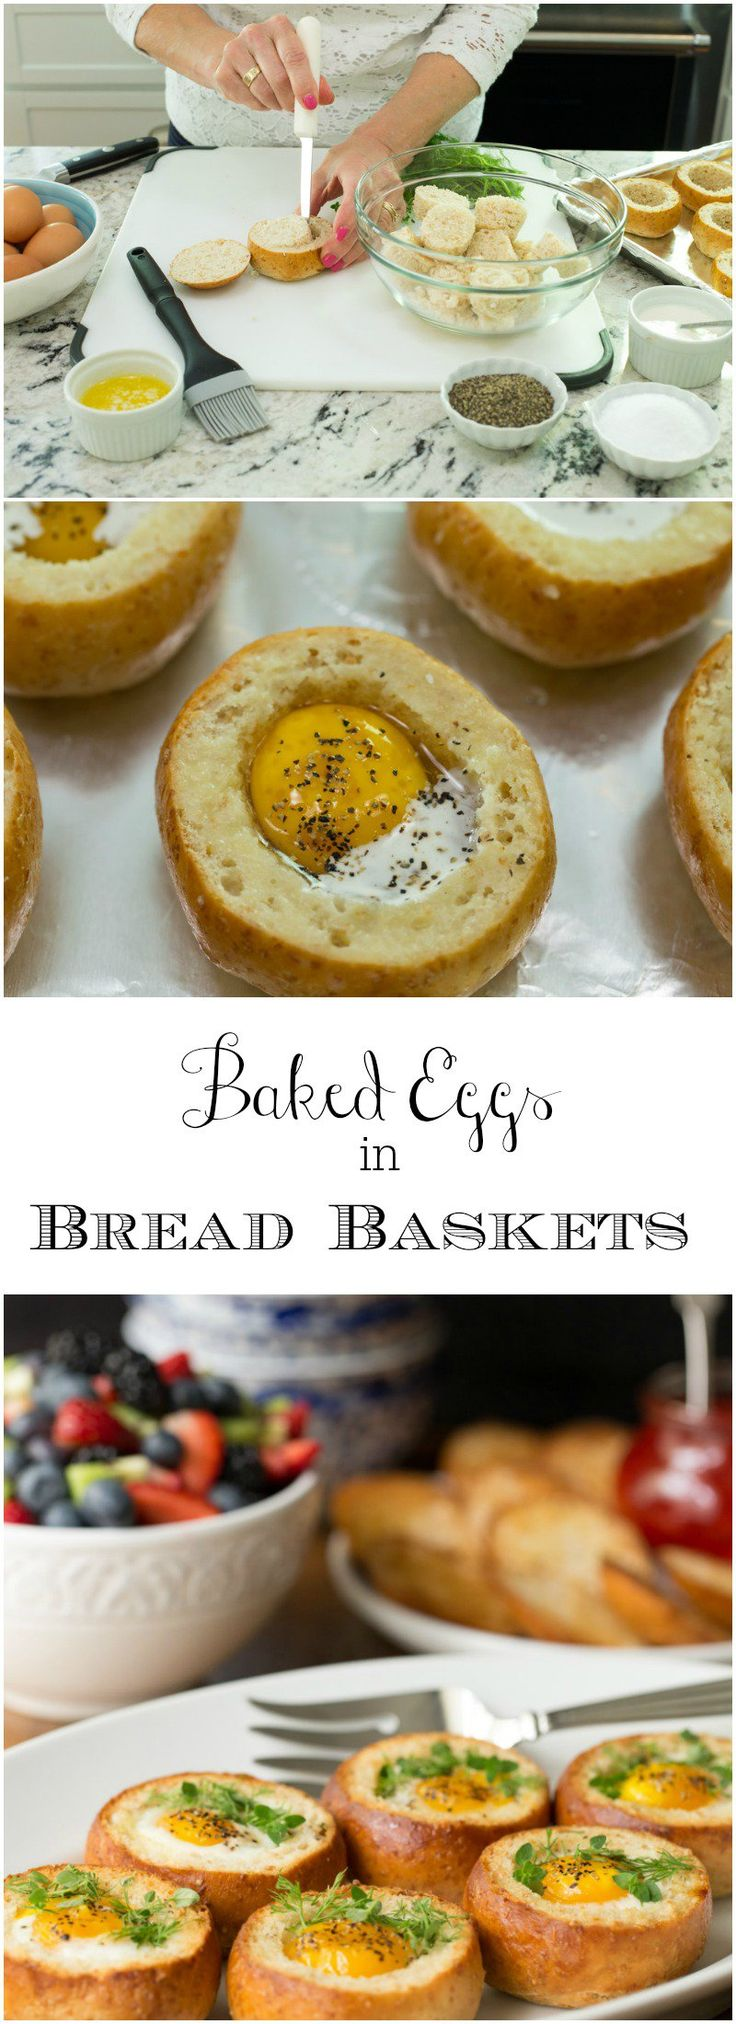 Baked Eggs in Bread Baskets - perfect for an easy, everyday breakfast these eggs are also wonderful for breakfast and brunch get togethers, as most of the prep work can be done ahead of time!